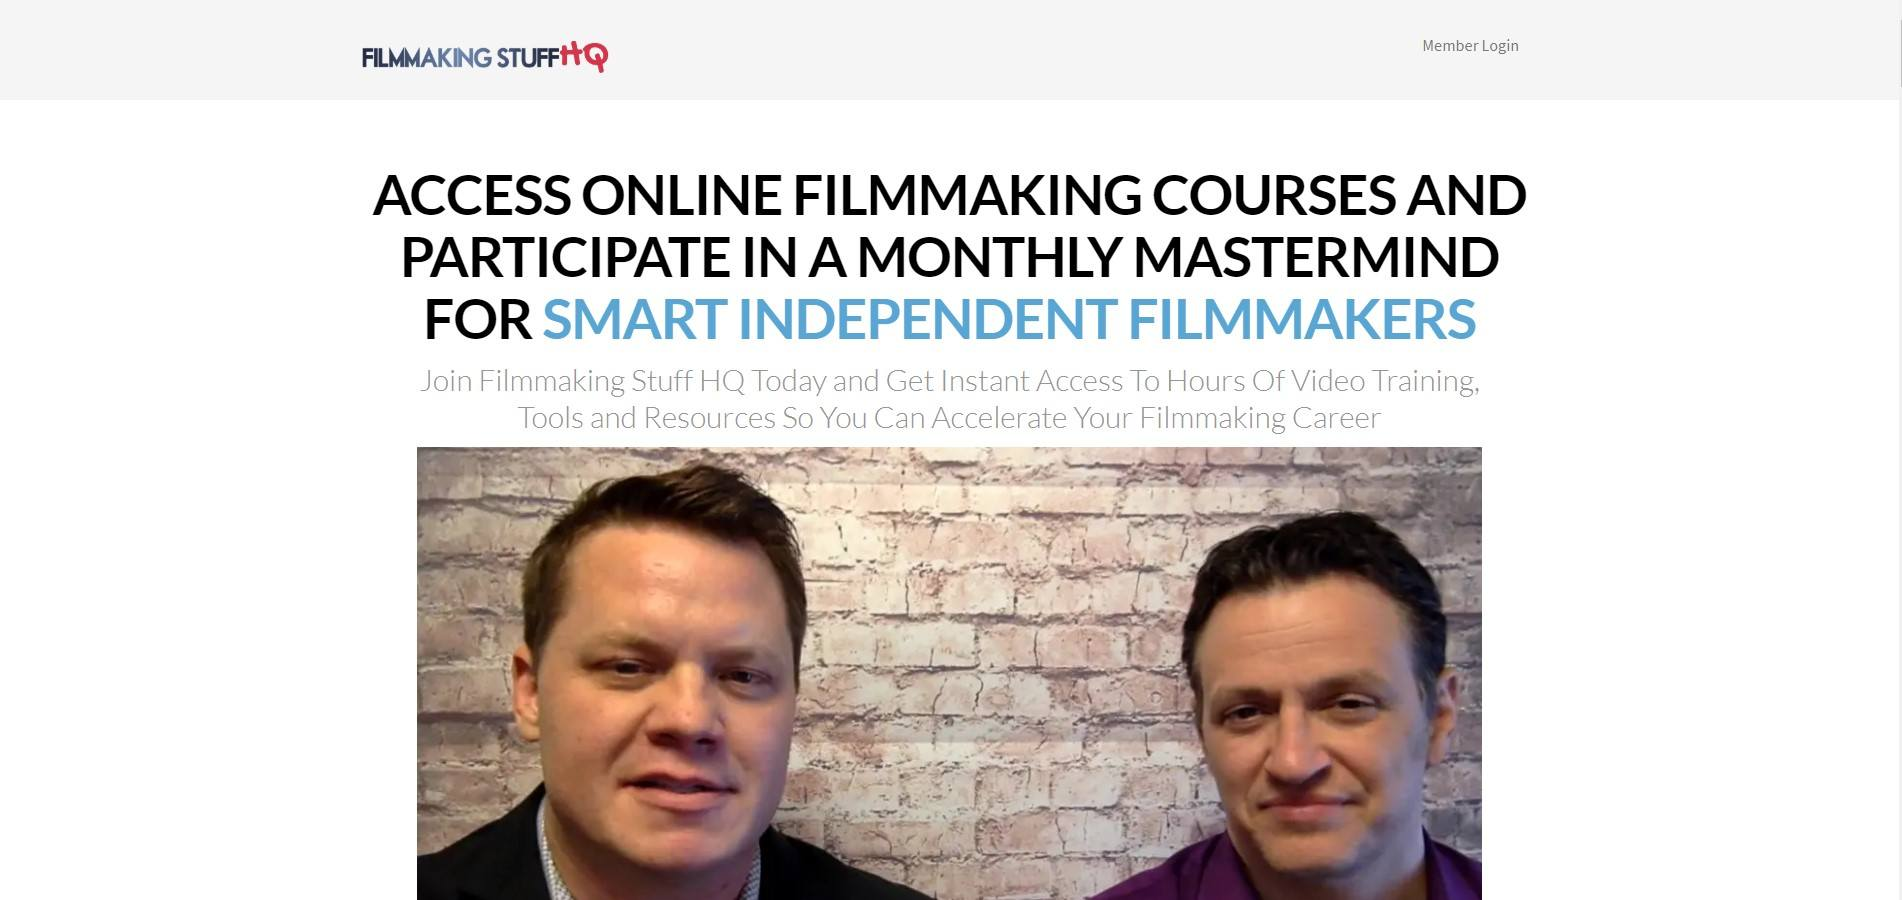 This screenshot has a photo of two men who are involved in most of the Filmmaking Stuff projects.